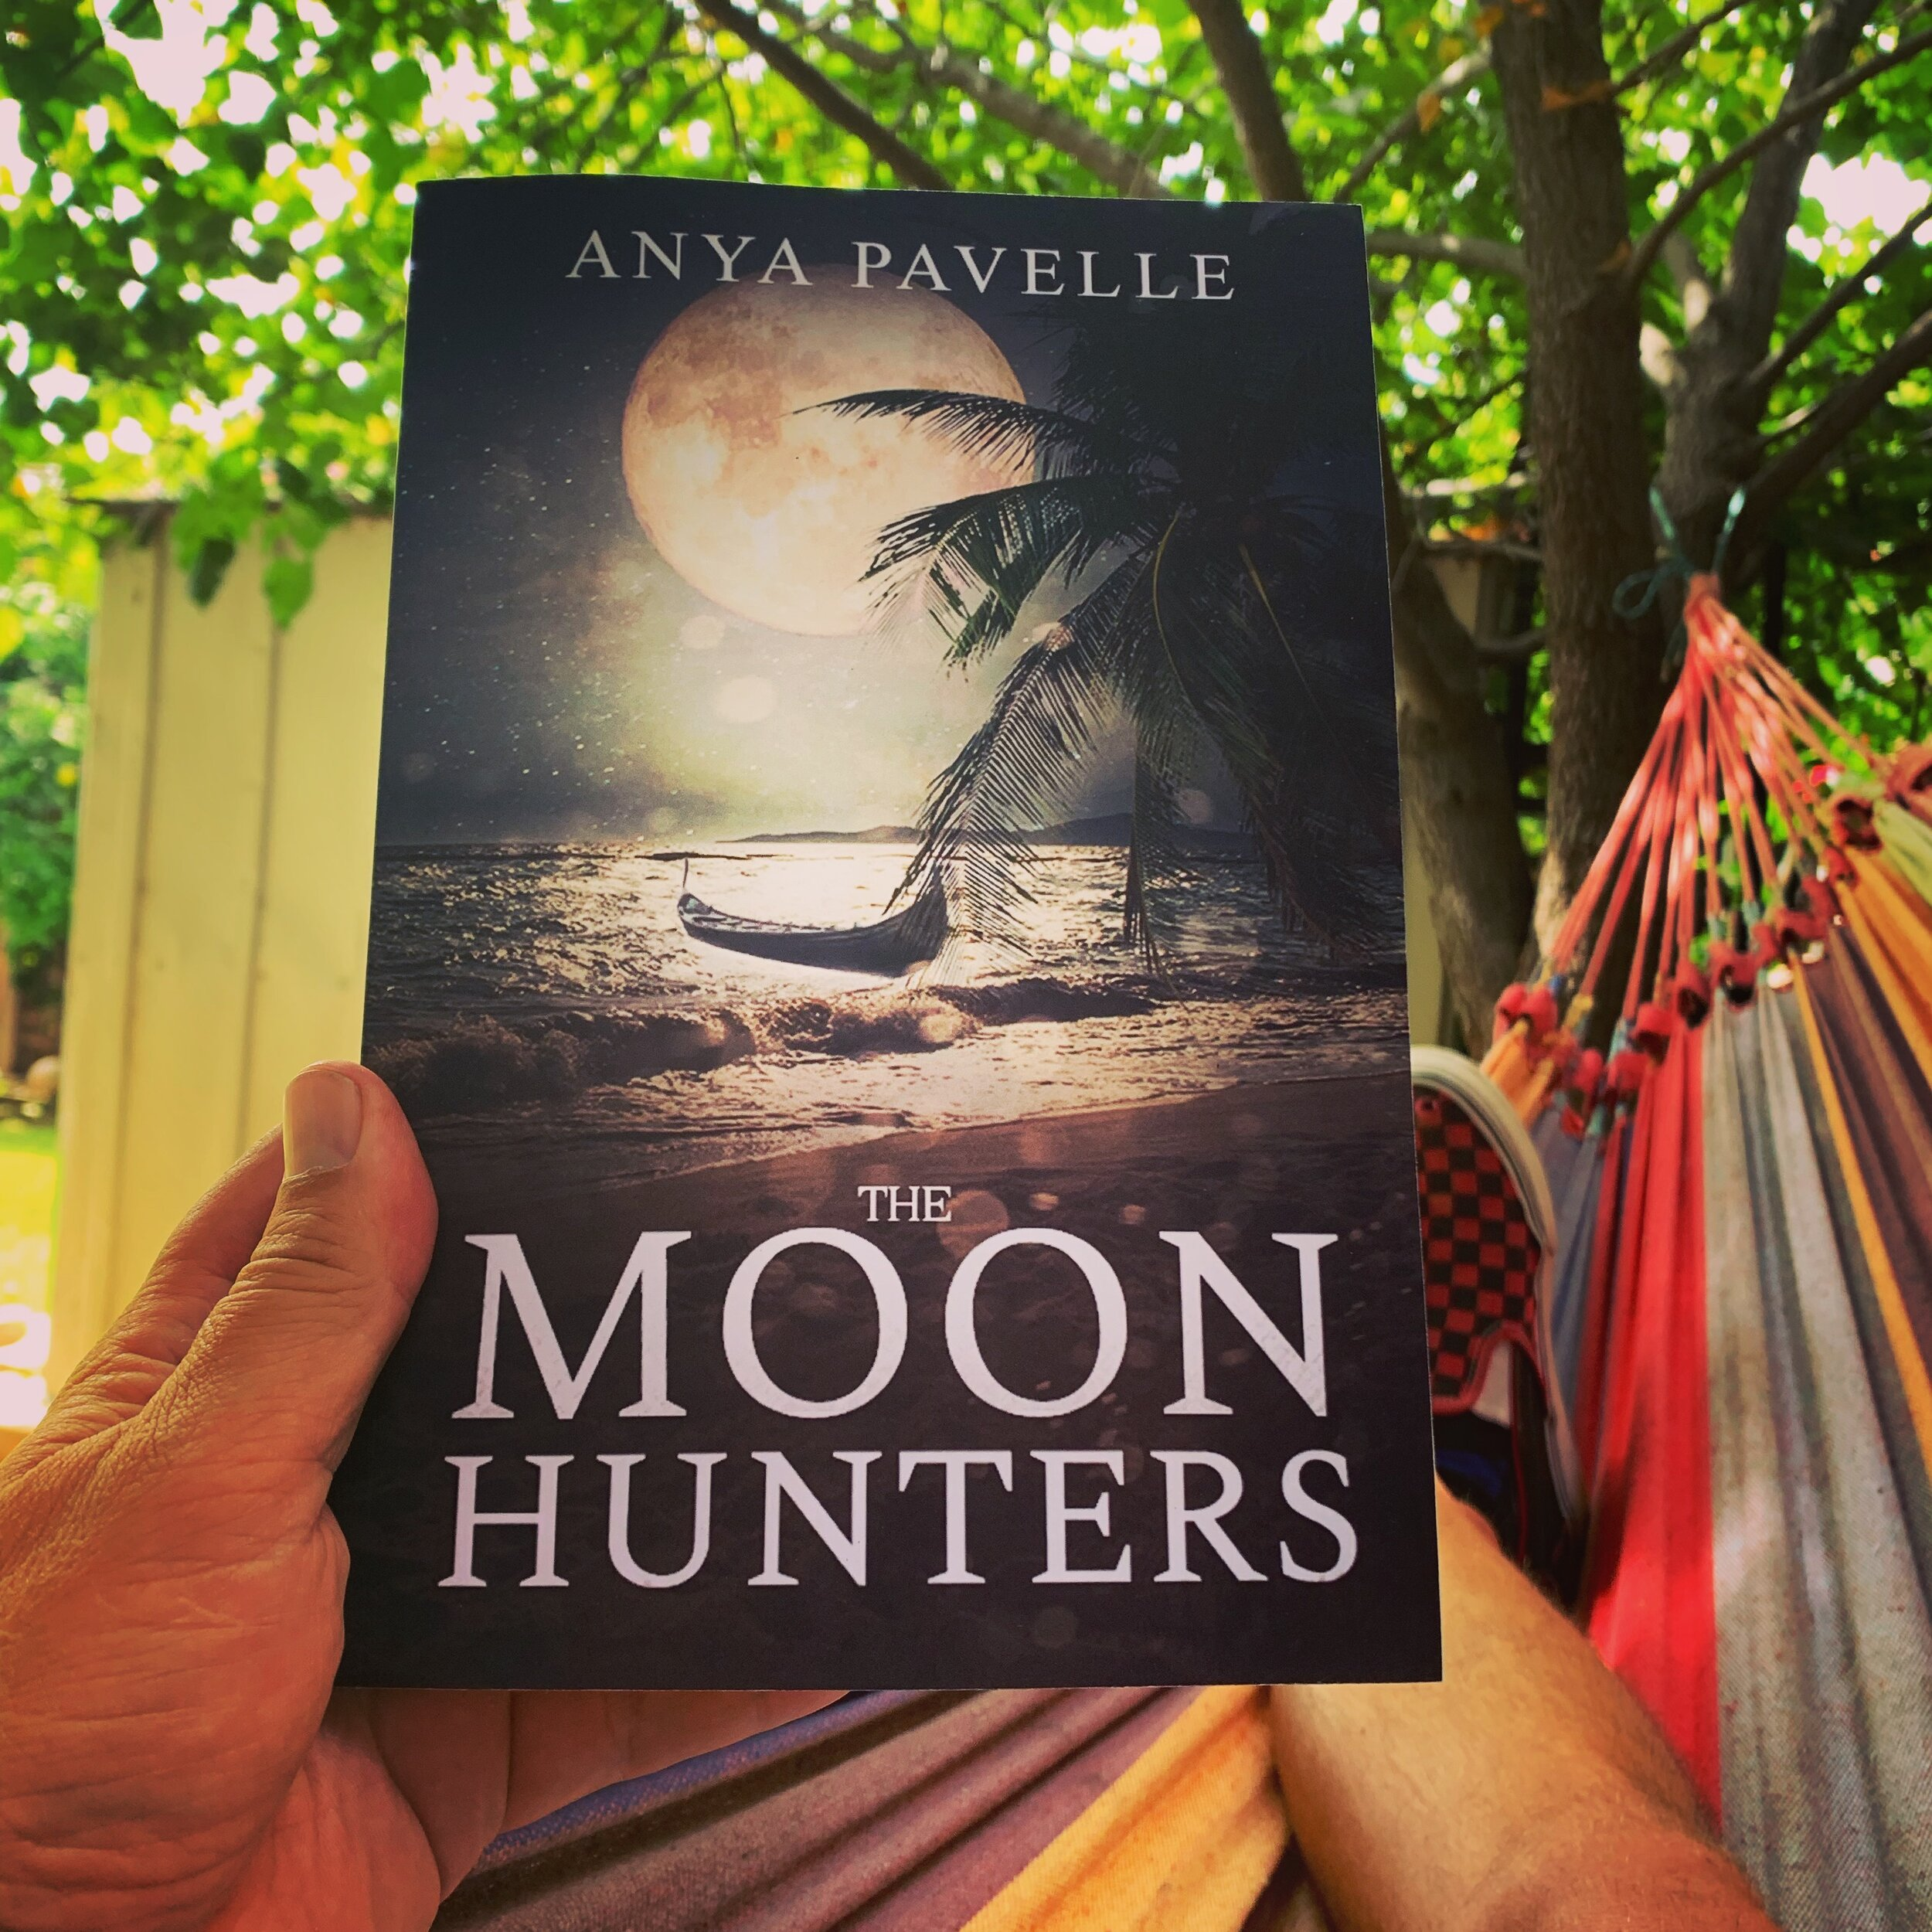 Hammock time is reading time.